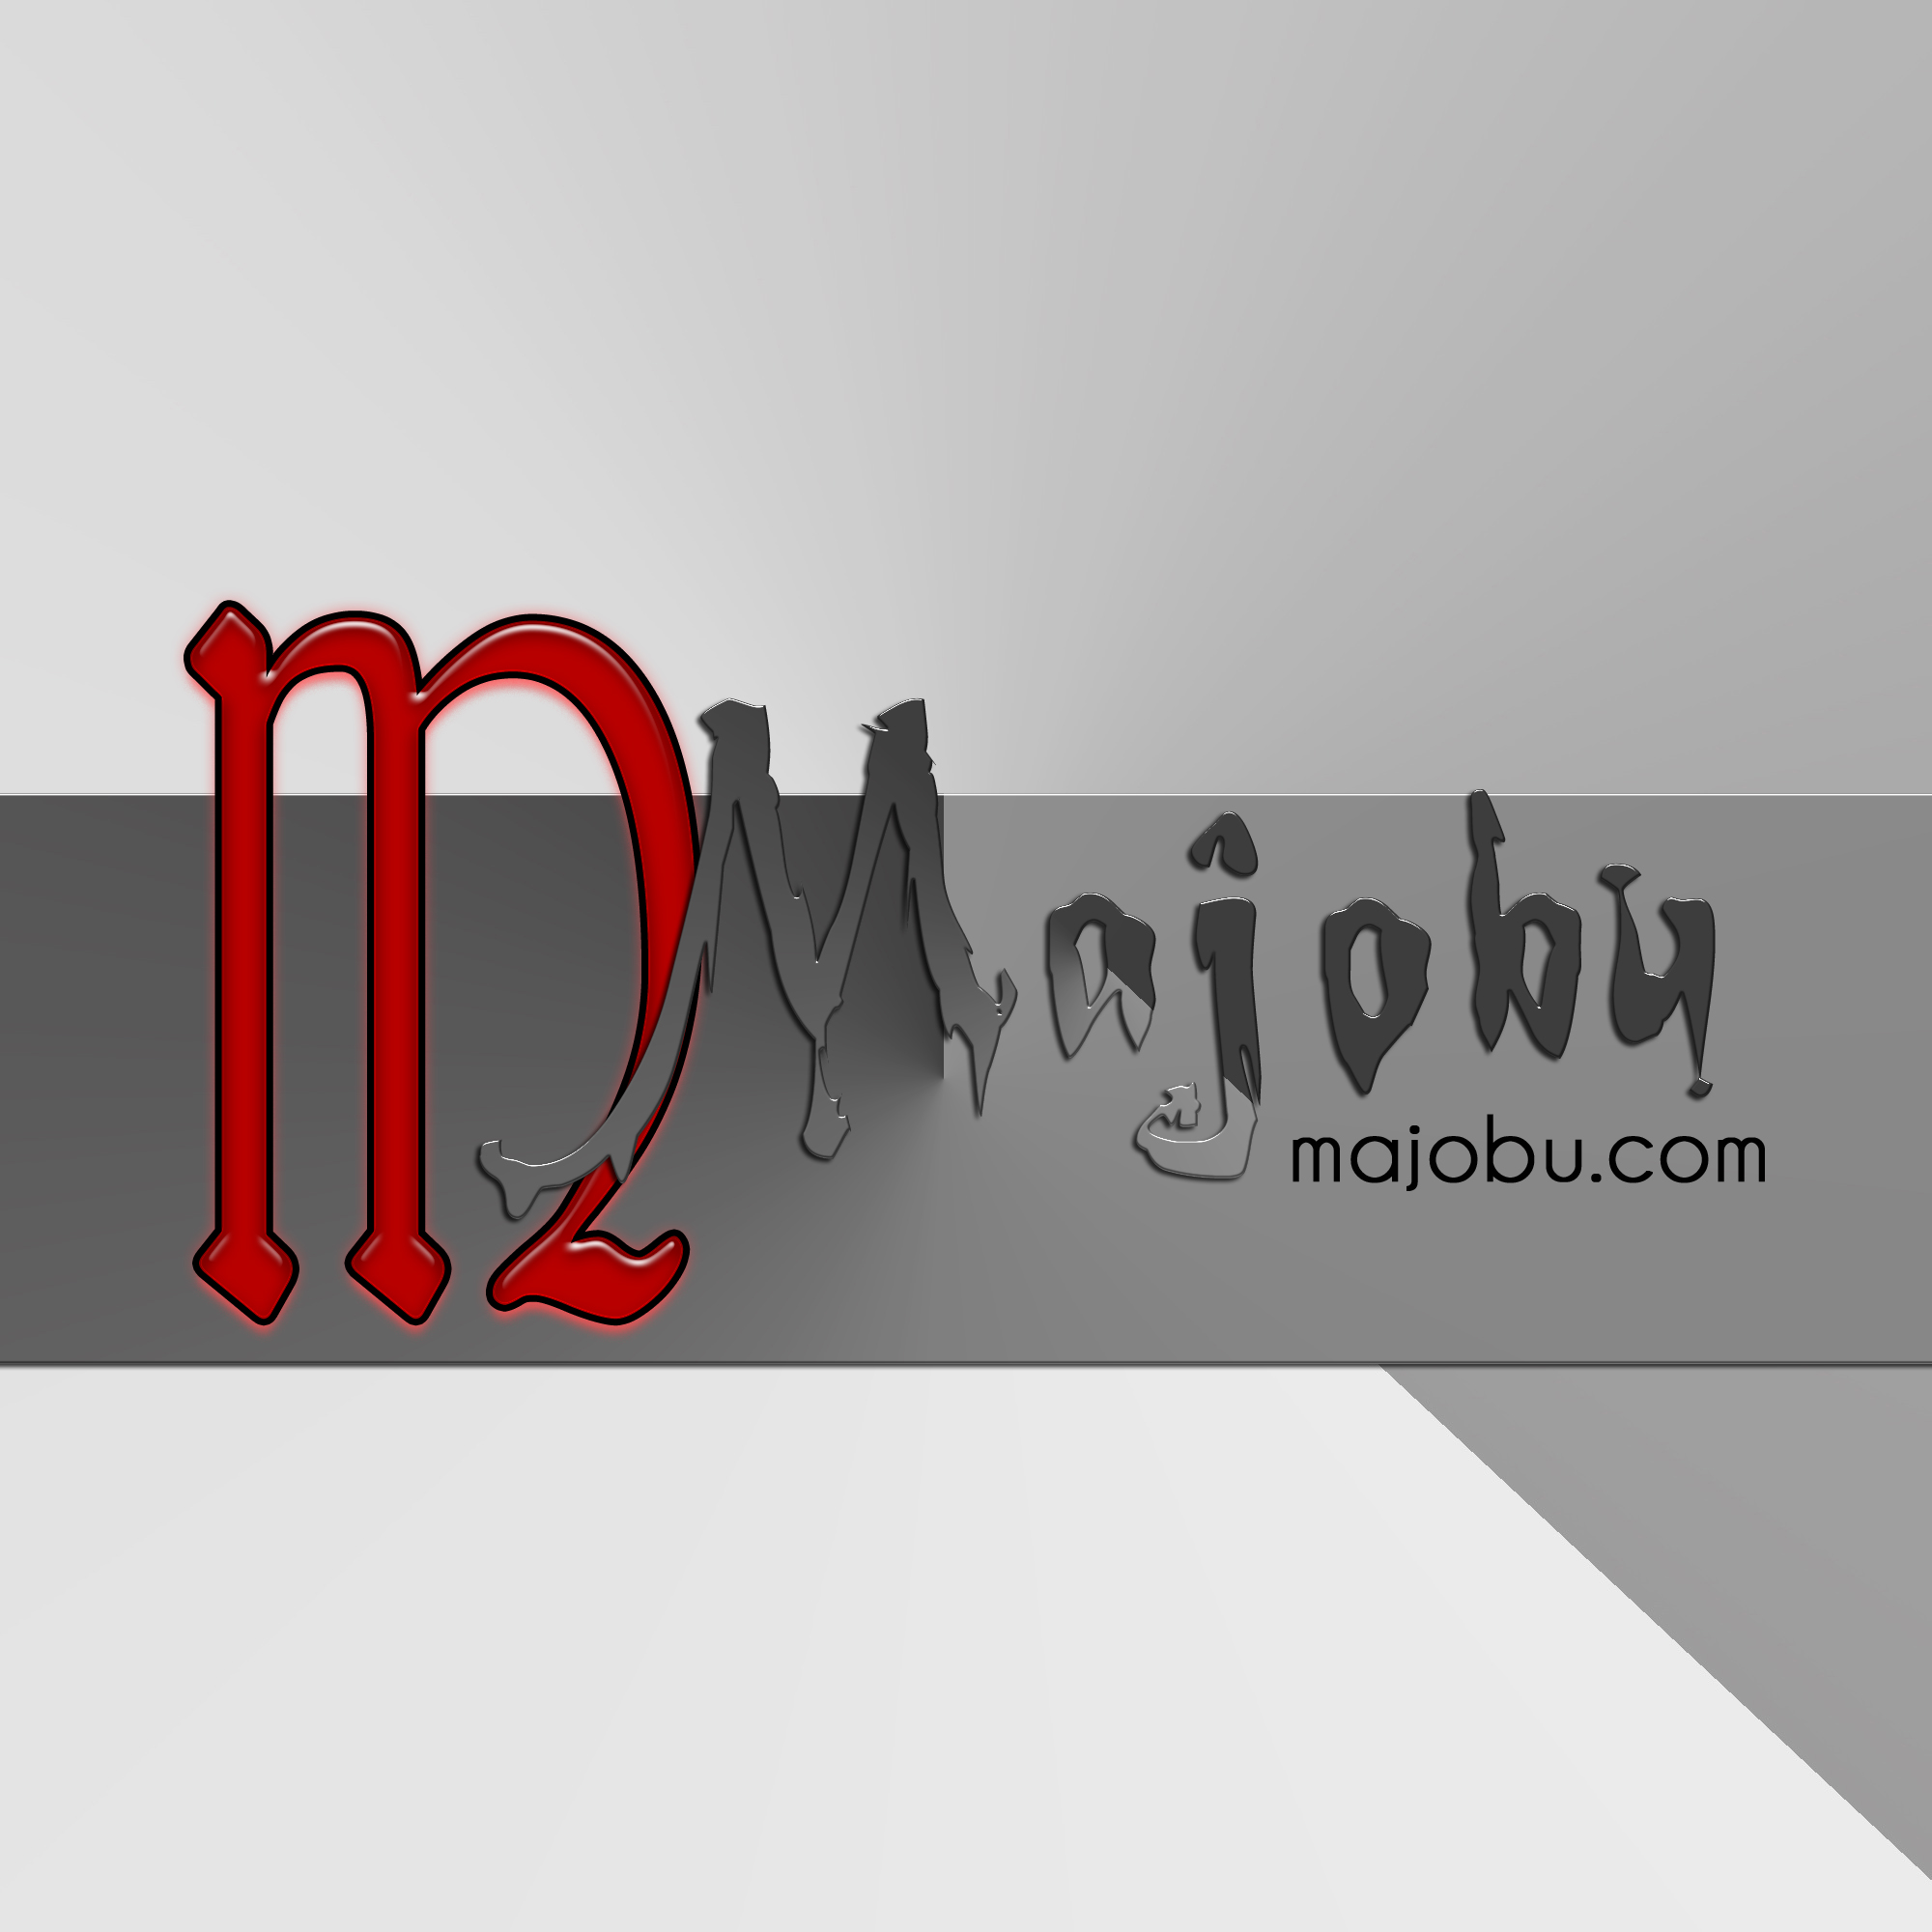 Logo Design by MITUCA ANDREI - Entry No. 144 in the Logo Design Contest Inspiring Logo Design for Majobu.